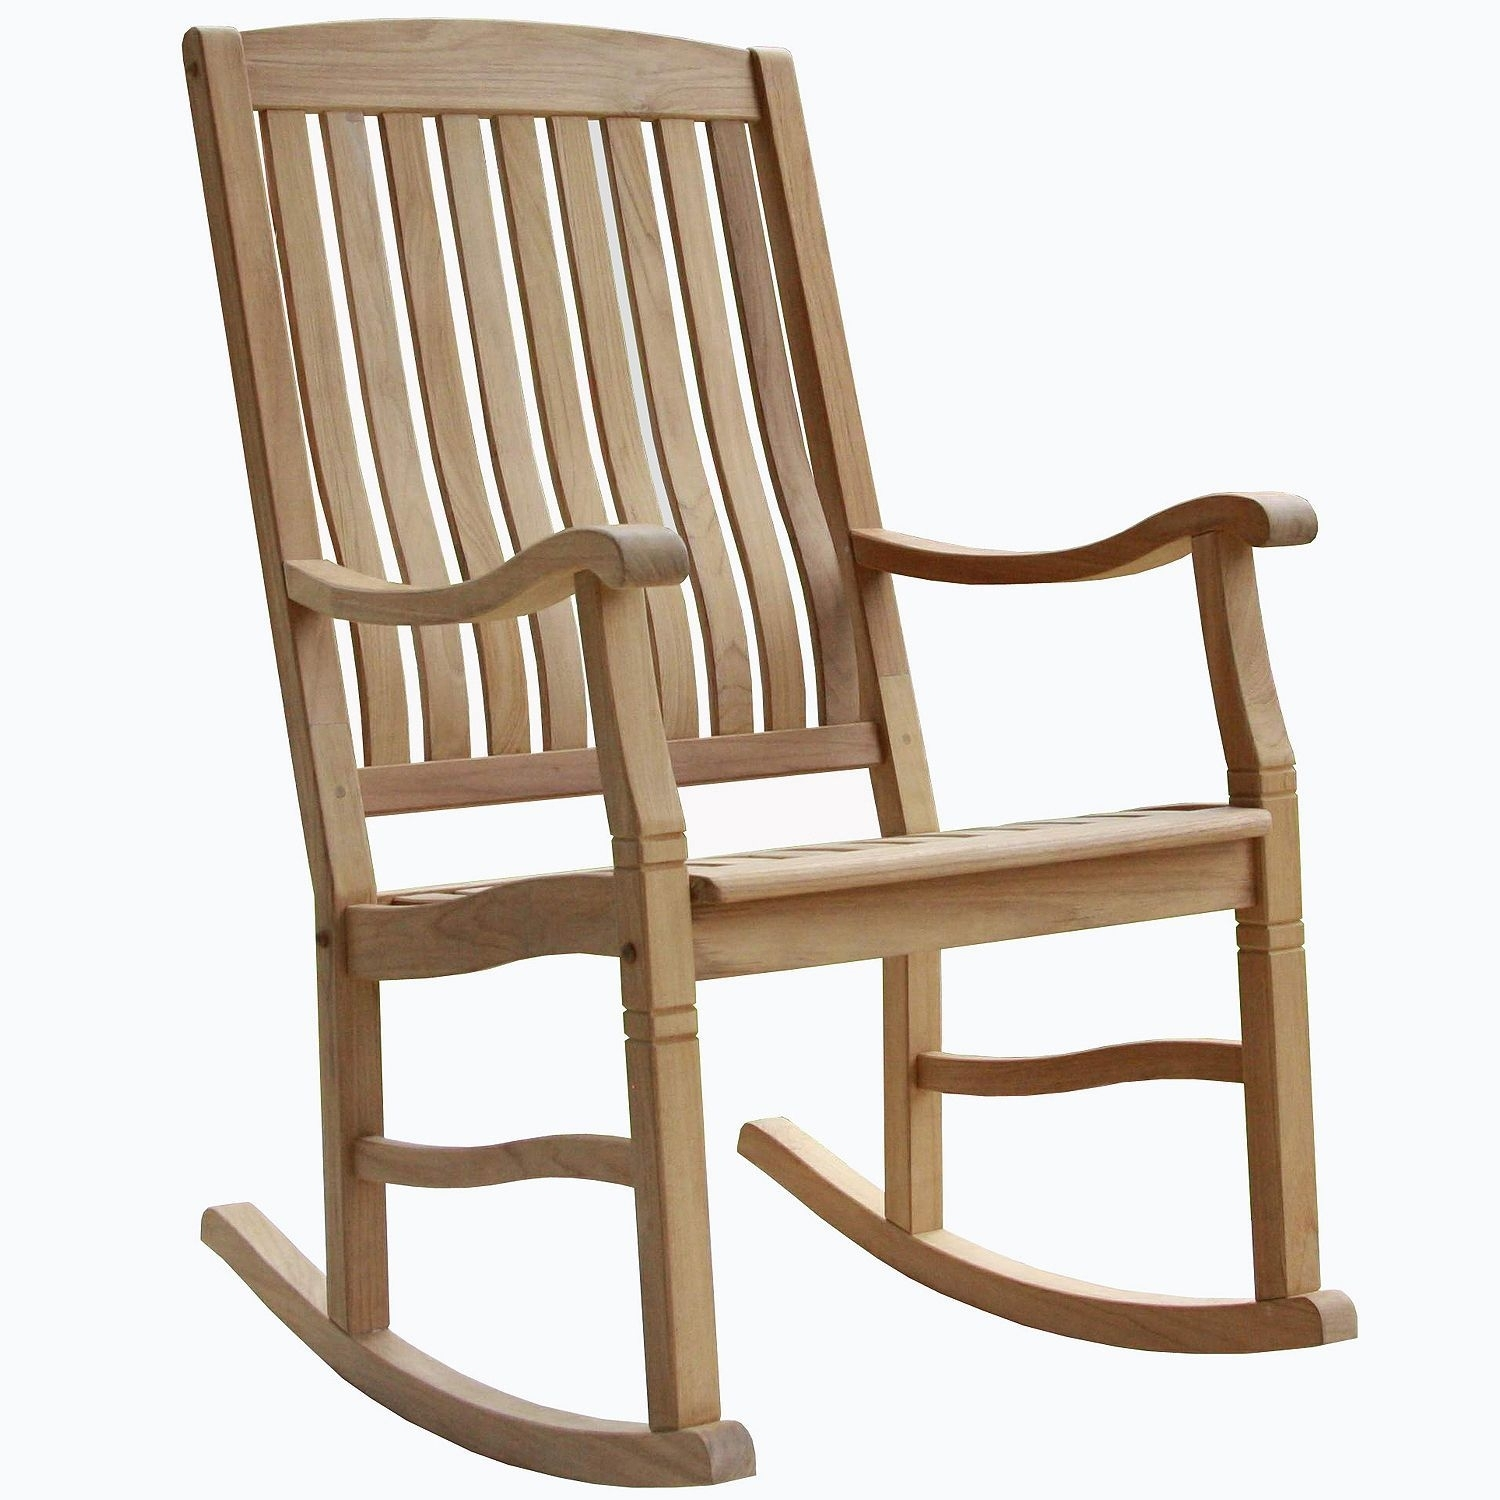 Inspiration about Teak Rocking Chair – Sam's Club–These Are The Ones We Have In N2 With Regard To Rocking Chairs At Sams Club (#1 of 15)